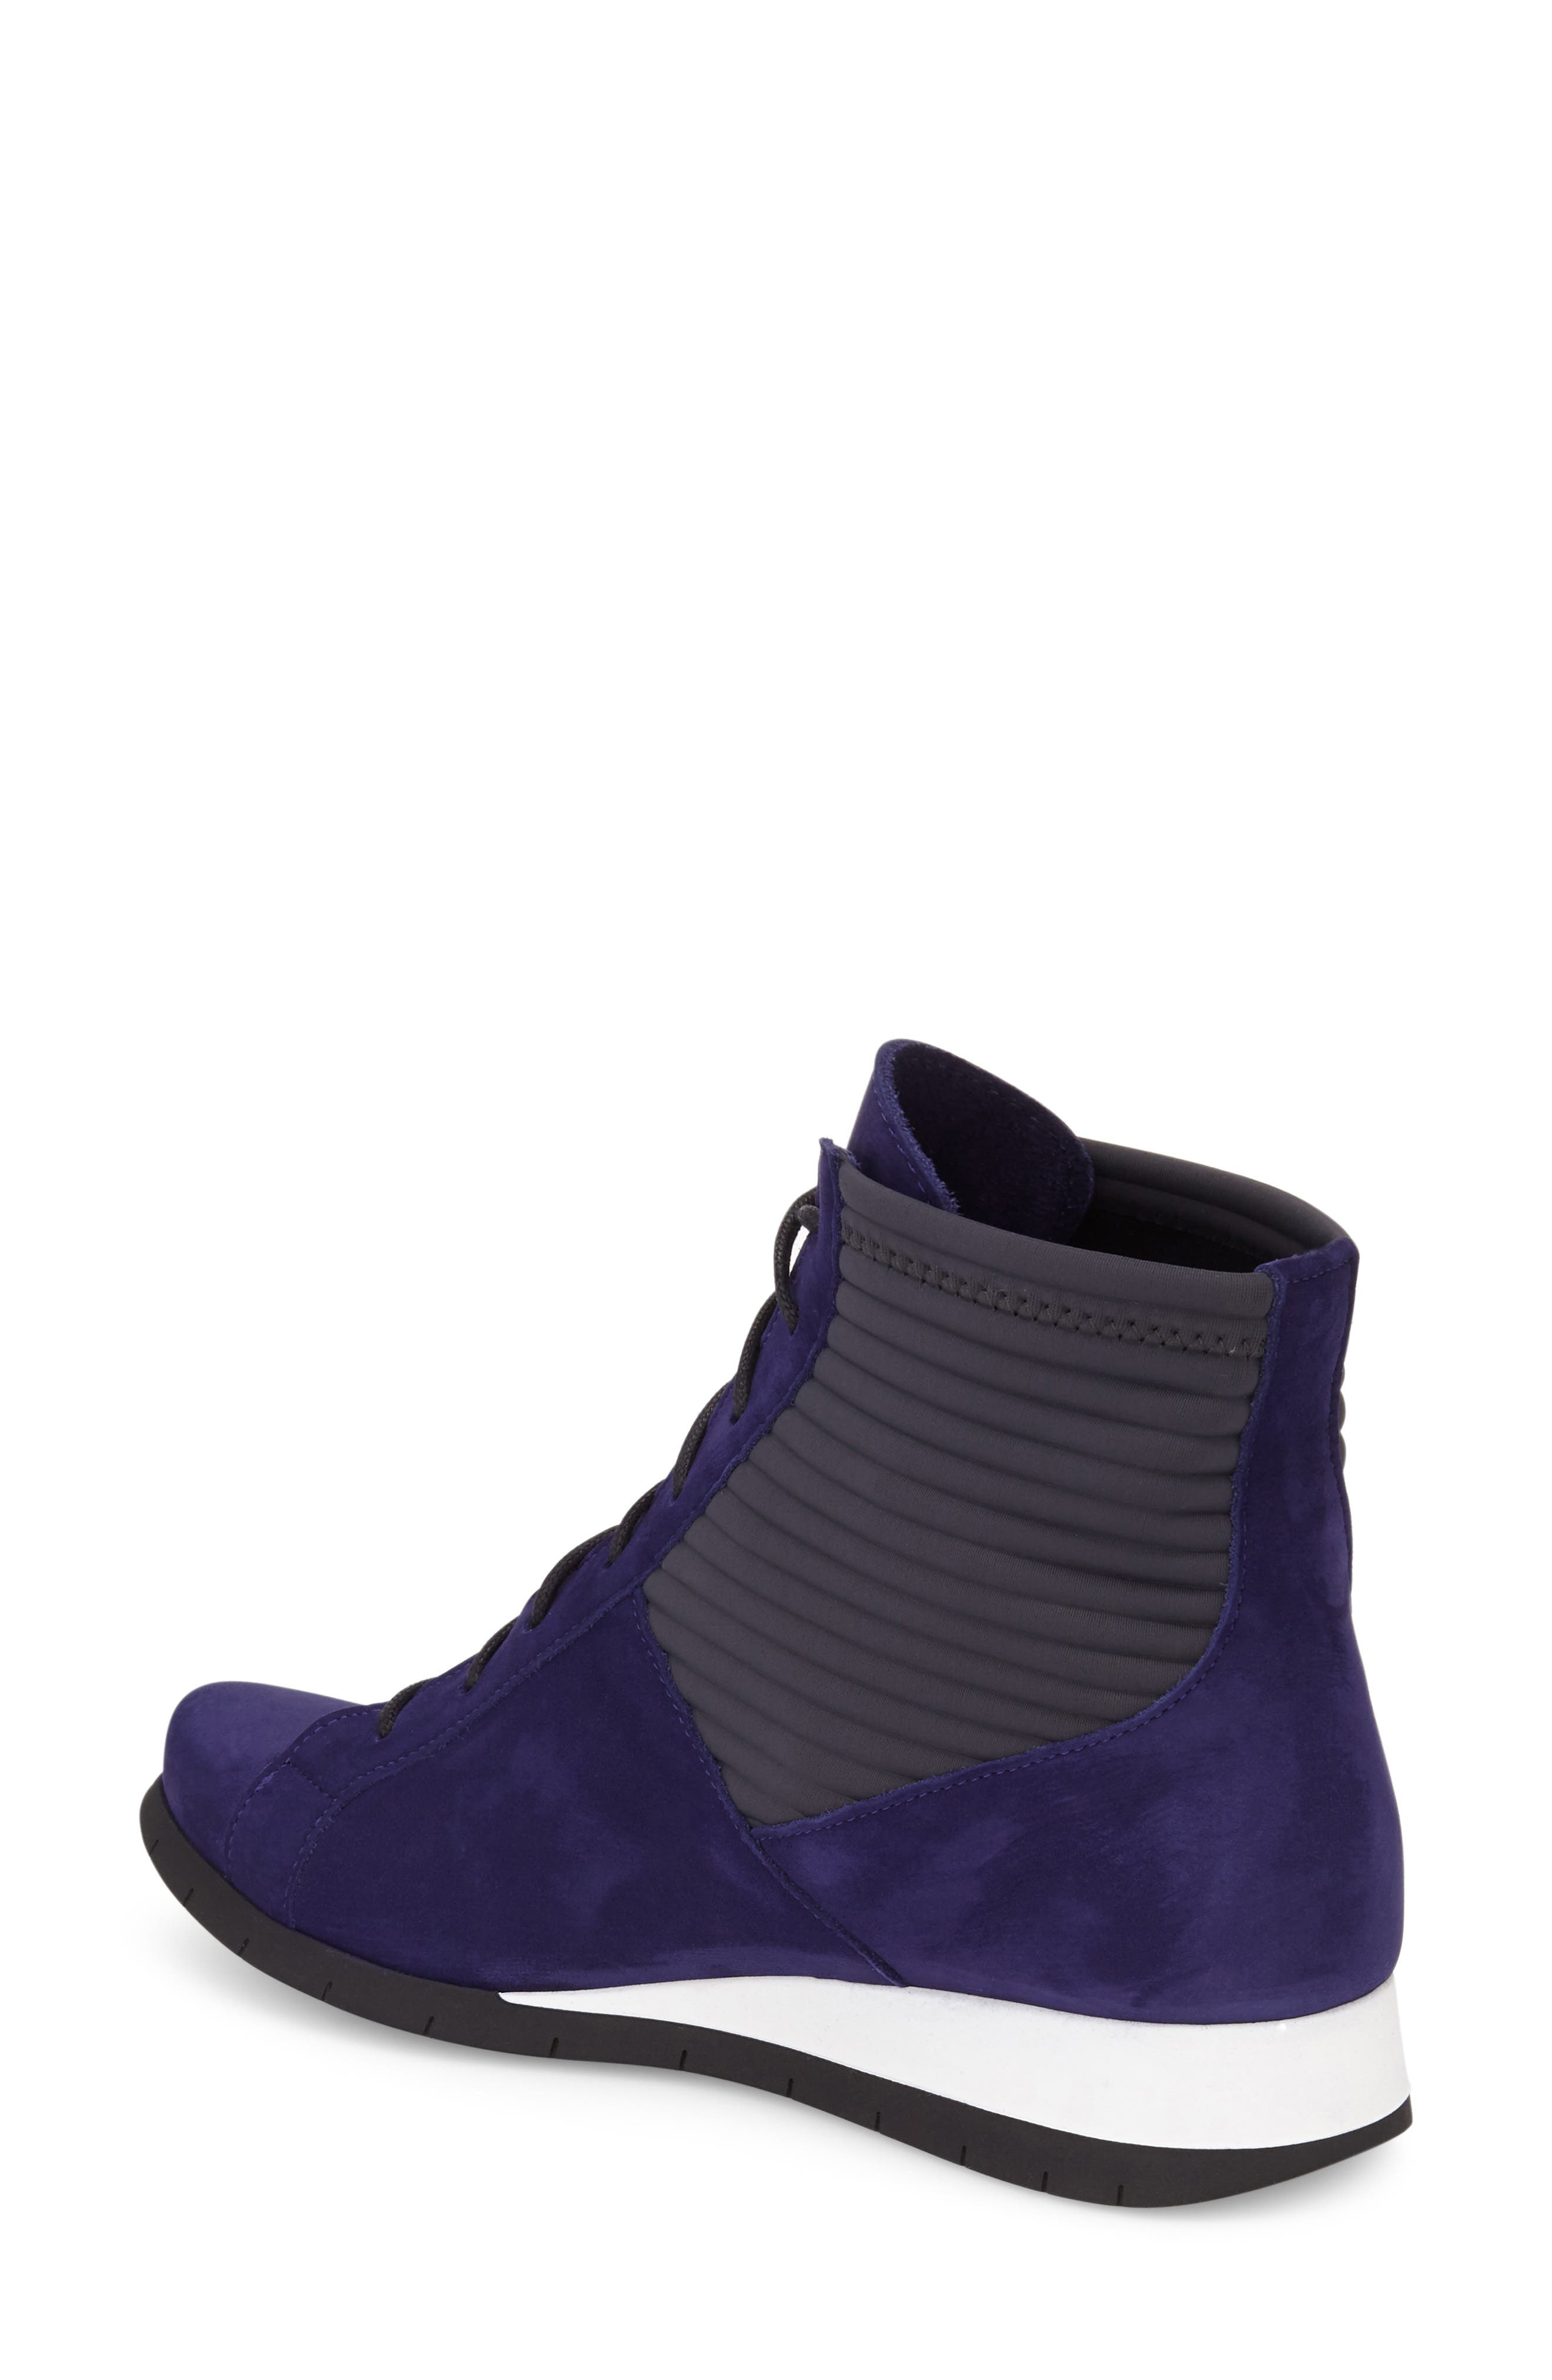 'Situ' Wedge High Top Sneaker,                             Alternate thumbnail 2, color,                             Encre/ Baltik Leather